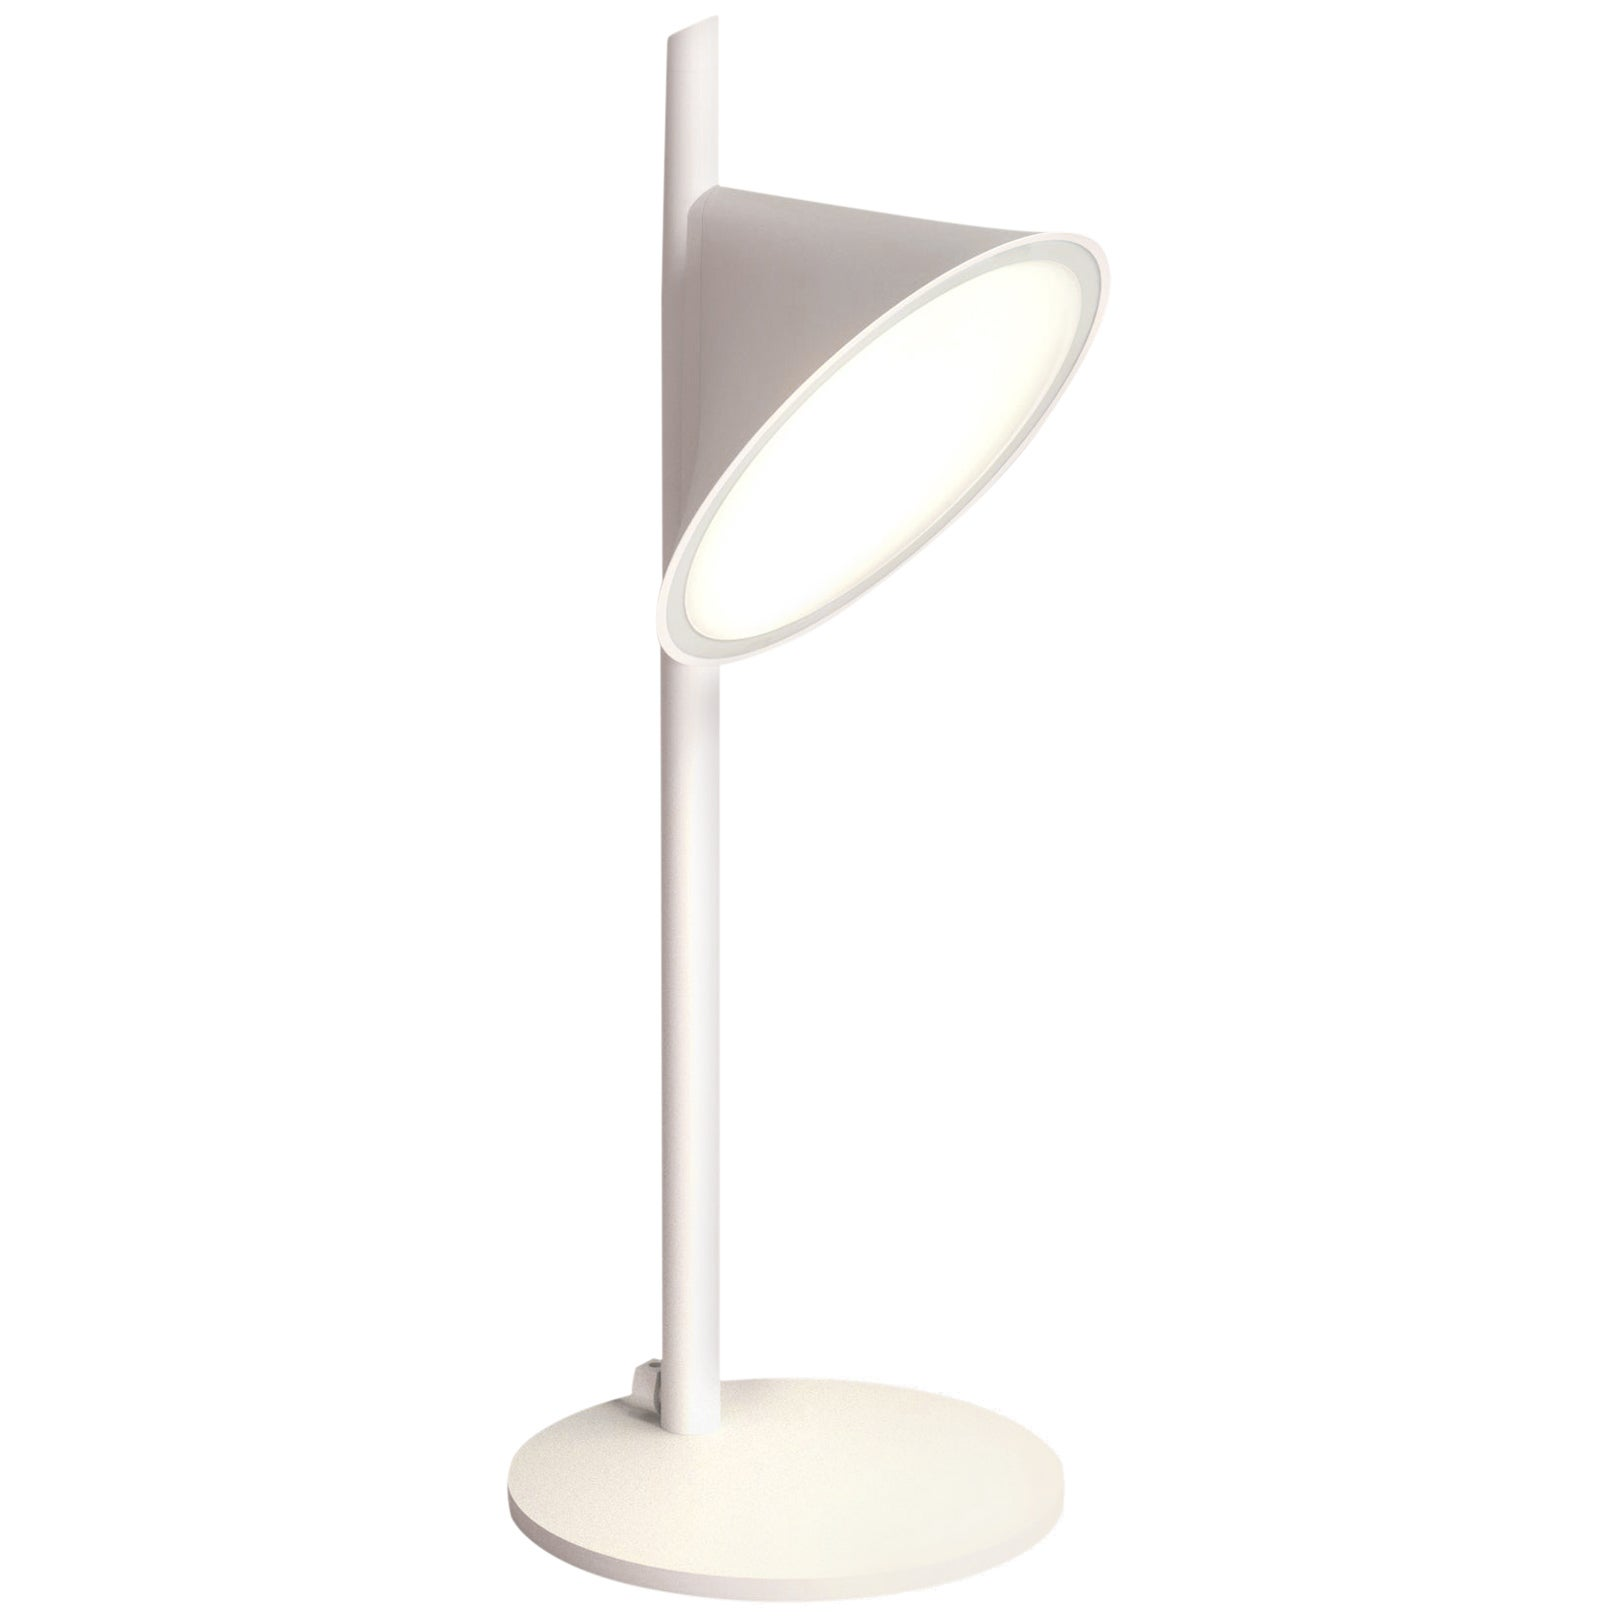 Orchid: Modern Italian Table Lamp, Minimal Form, High Performance, Dimmable